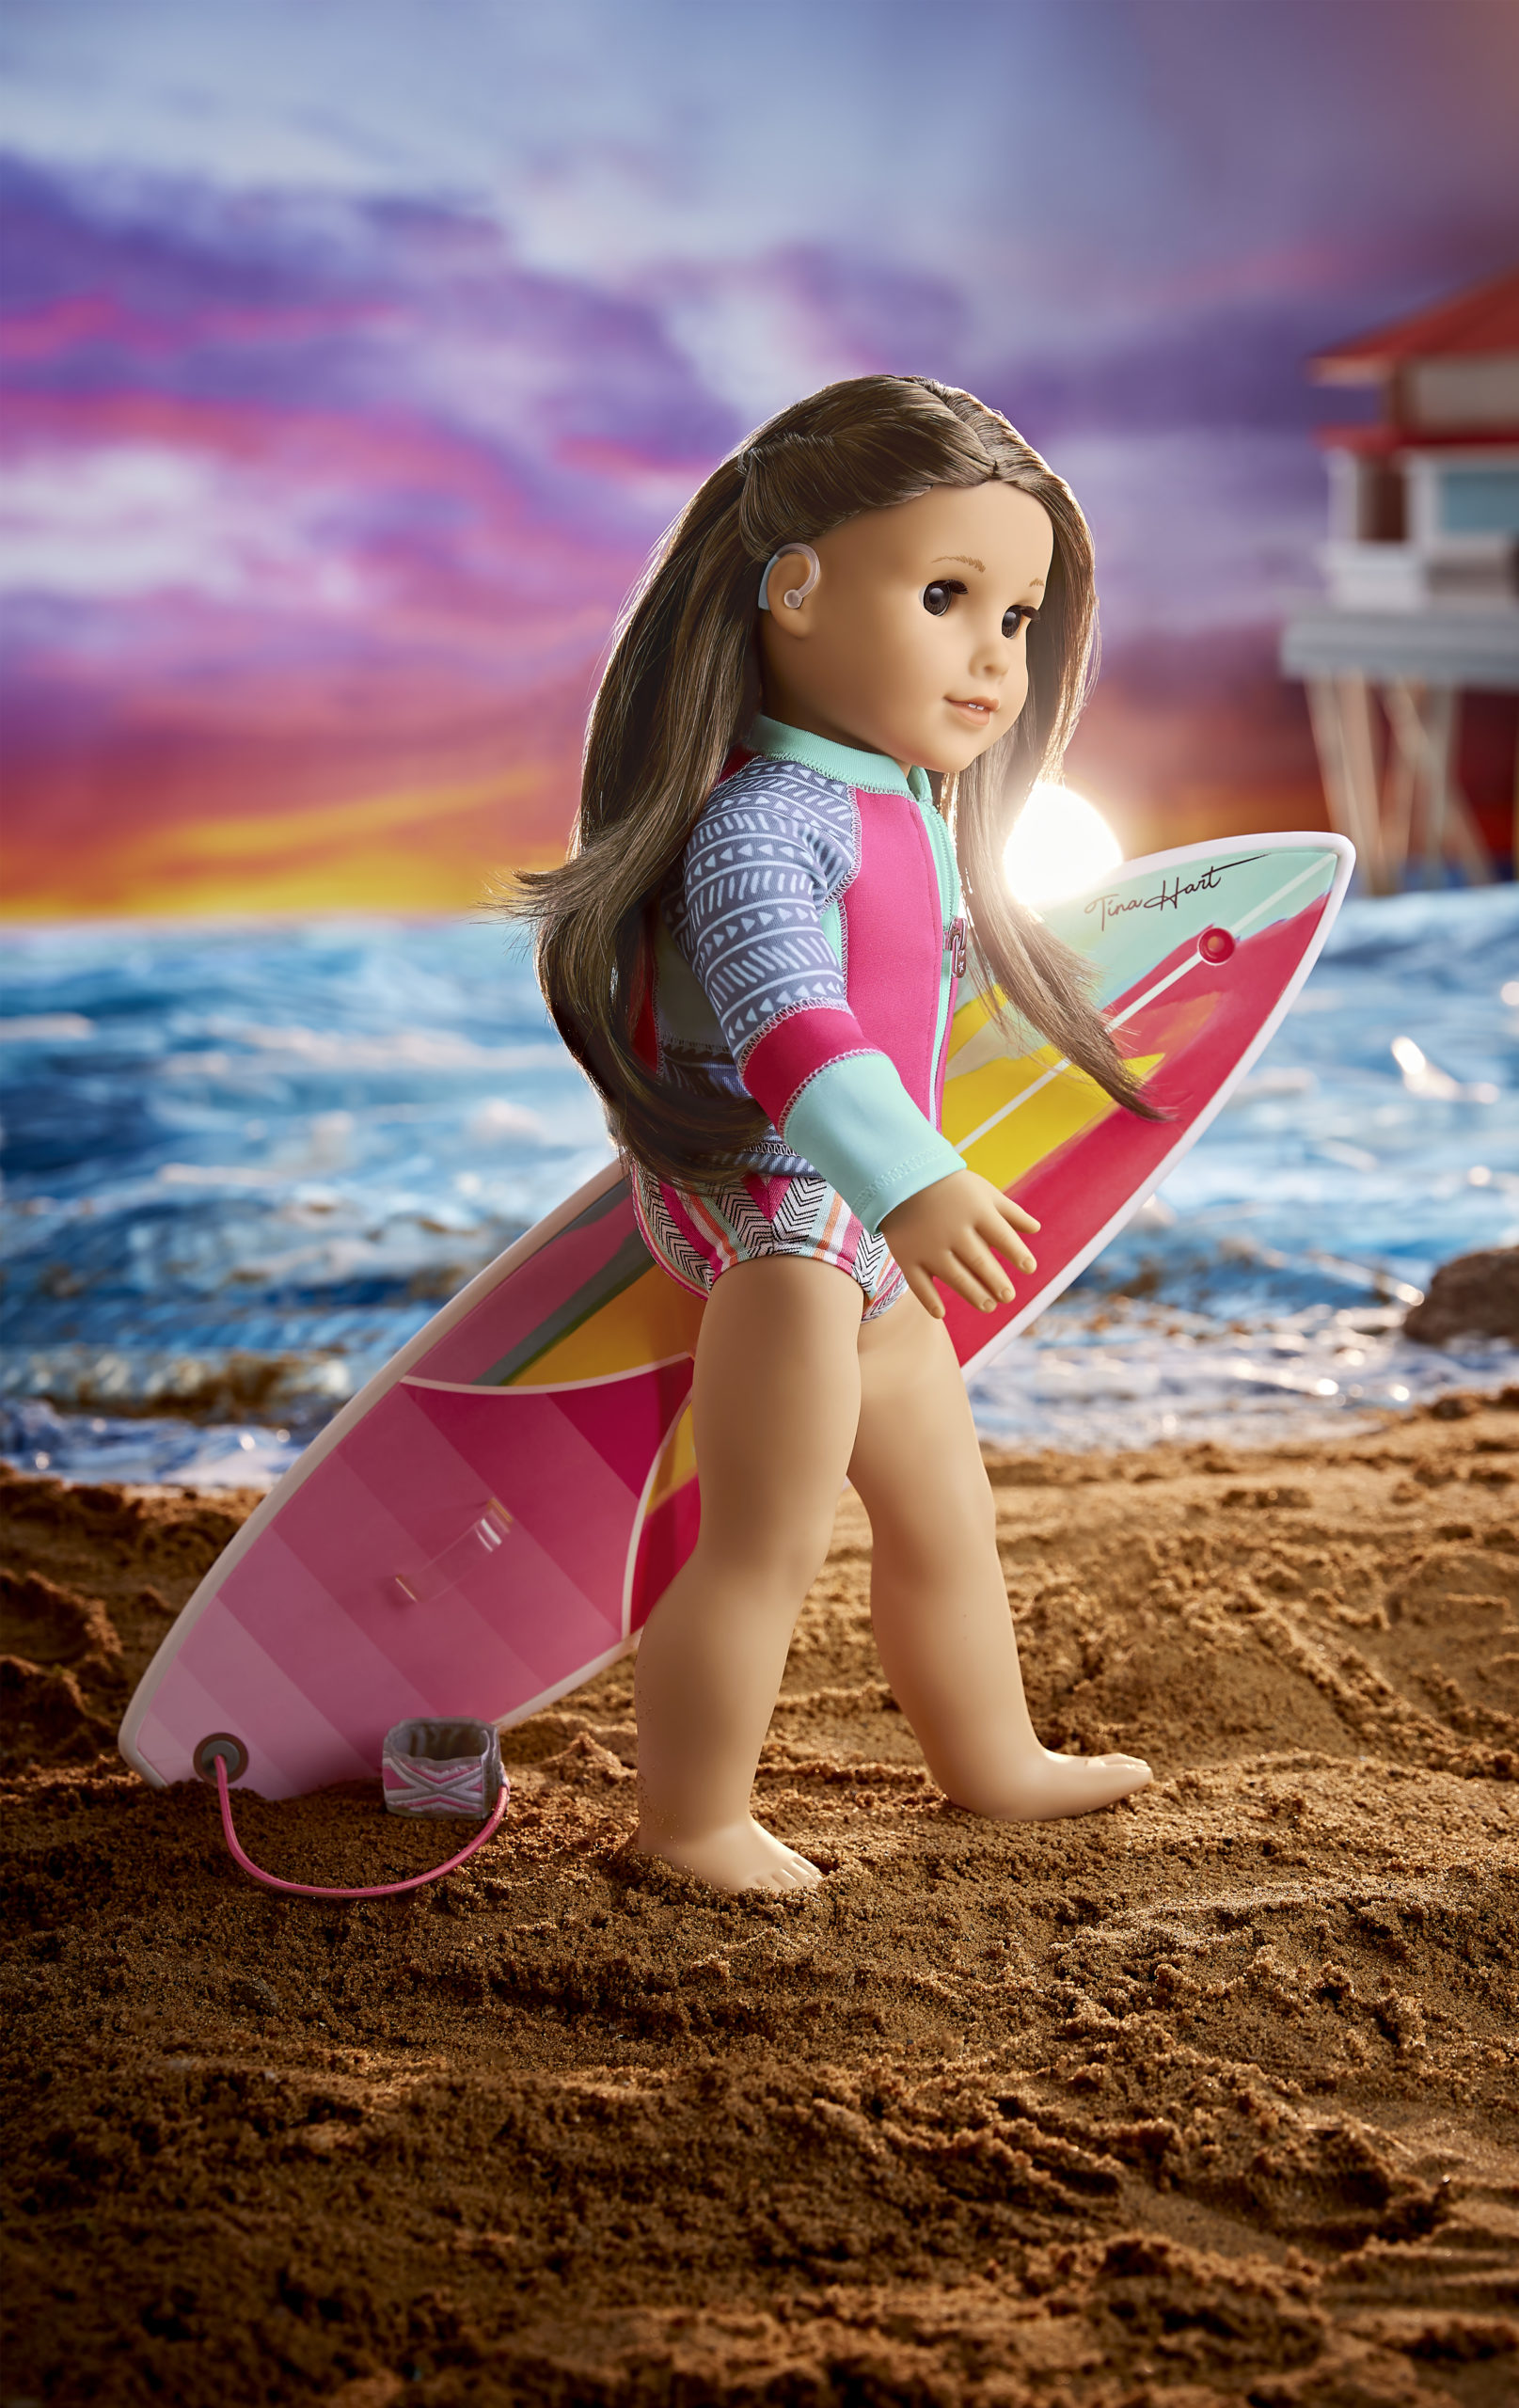 Joss - American Girl doll of the year 2020 - posing on the beach with a surf board